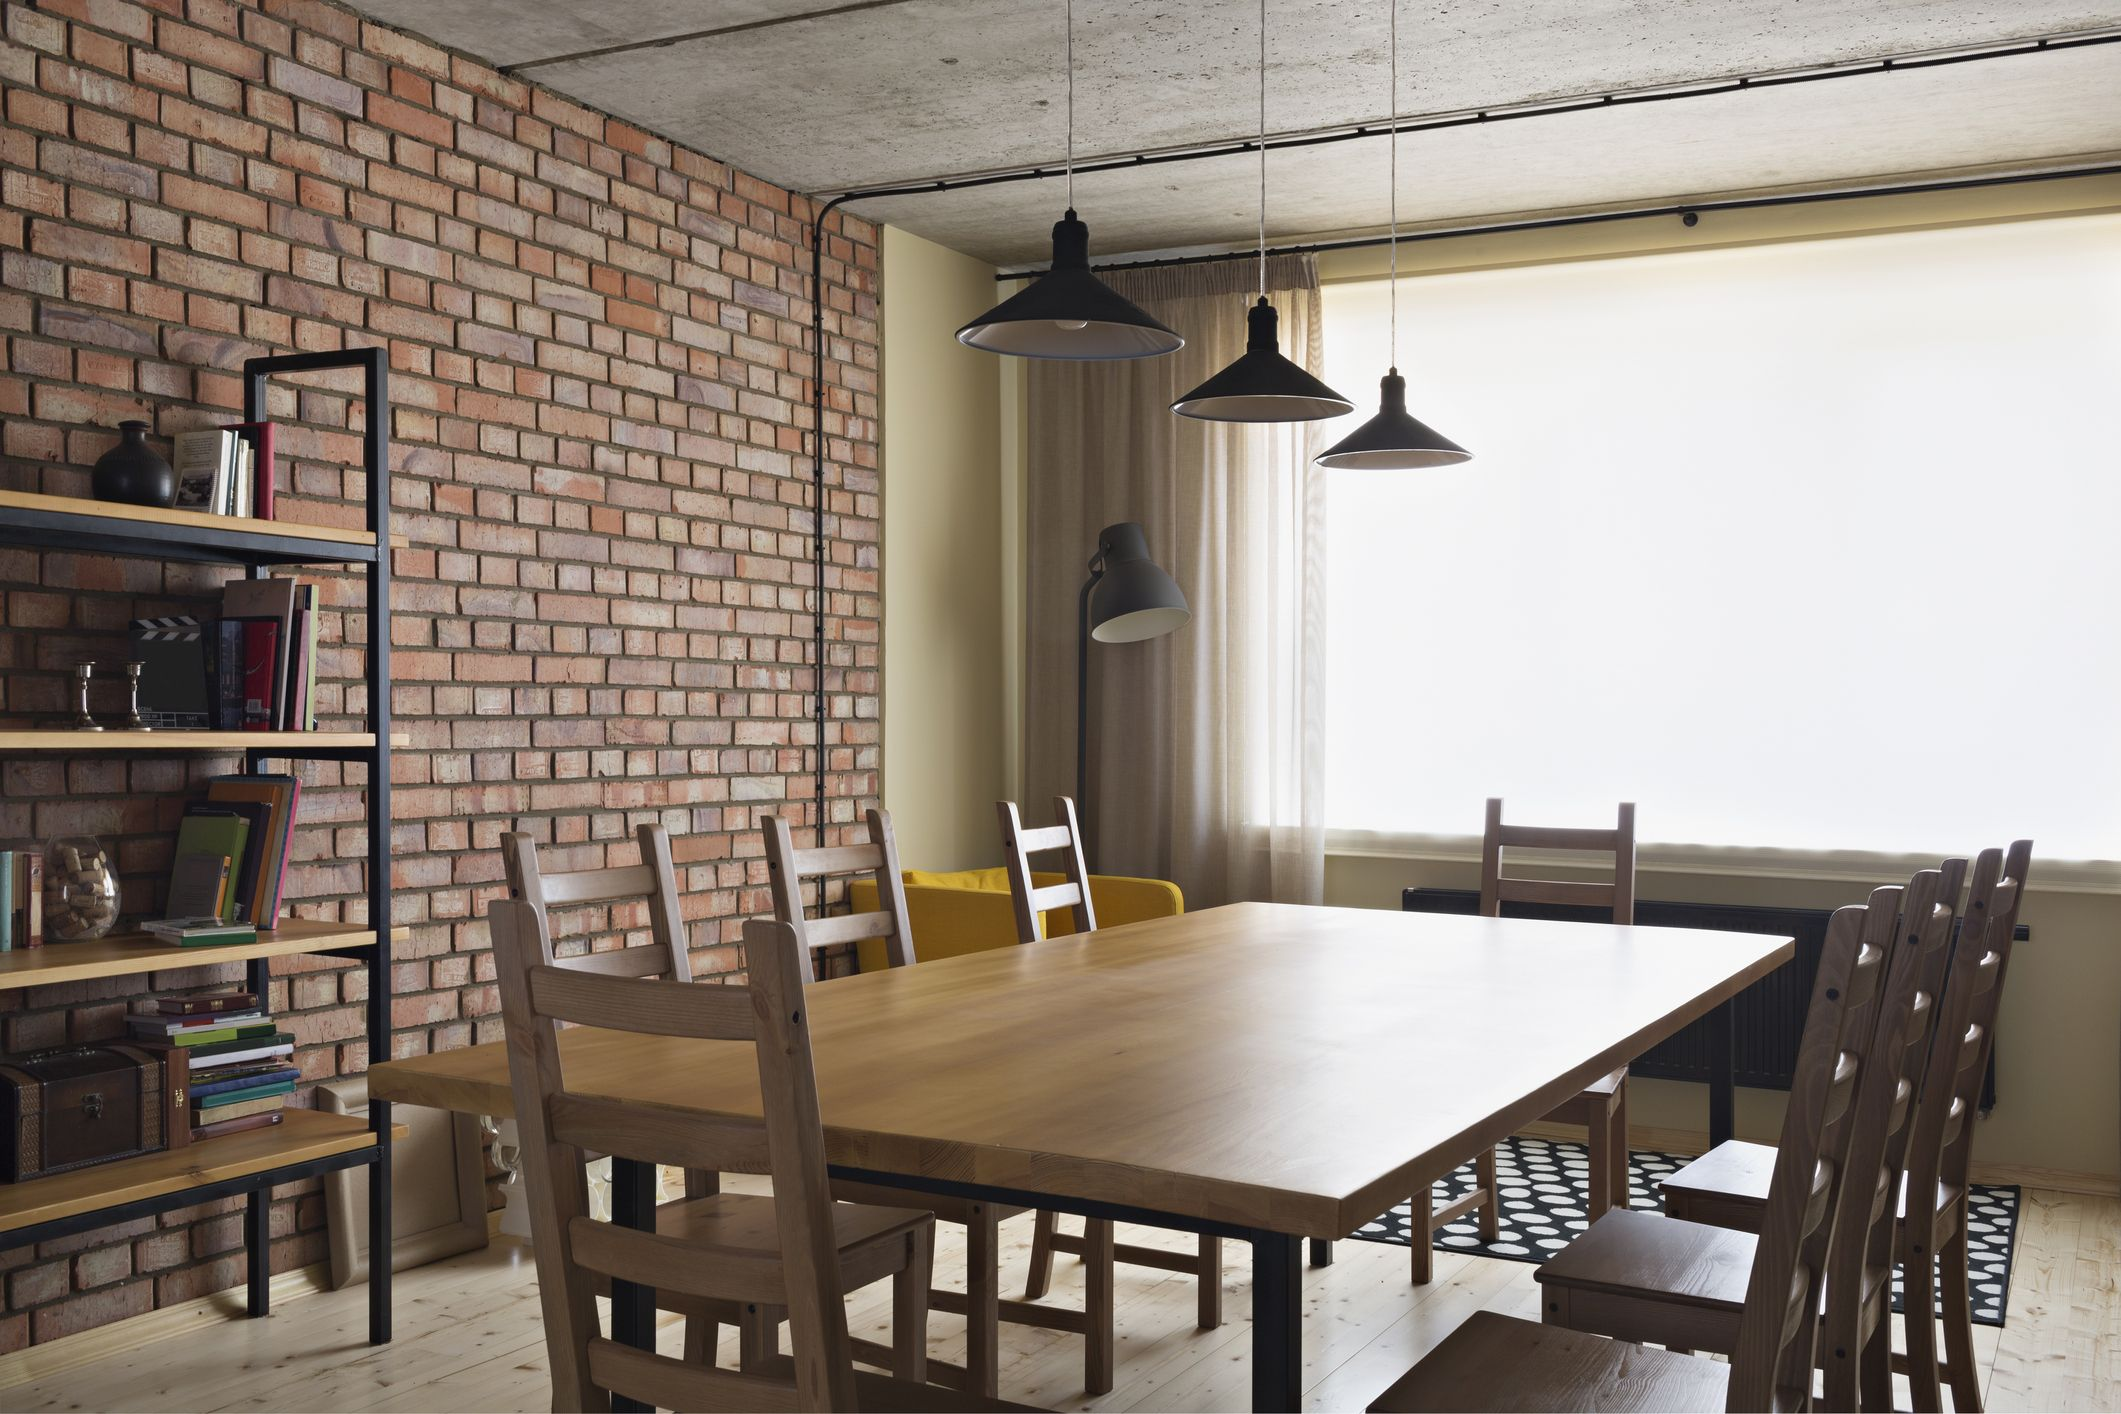 How To Achieve A Brick Finish In Your Home